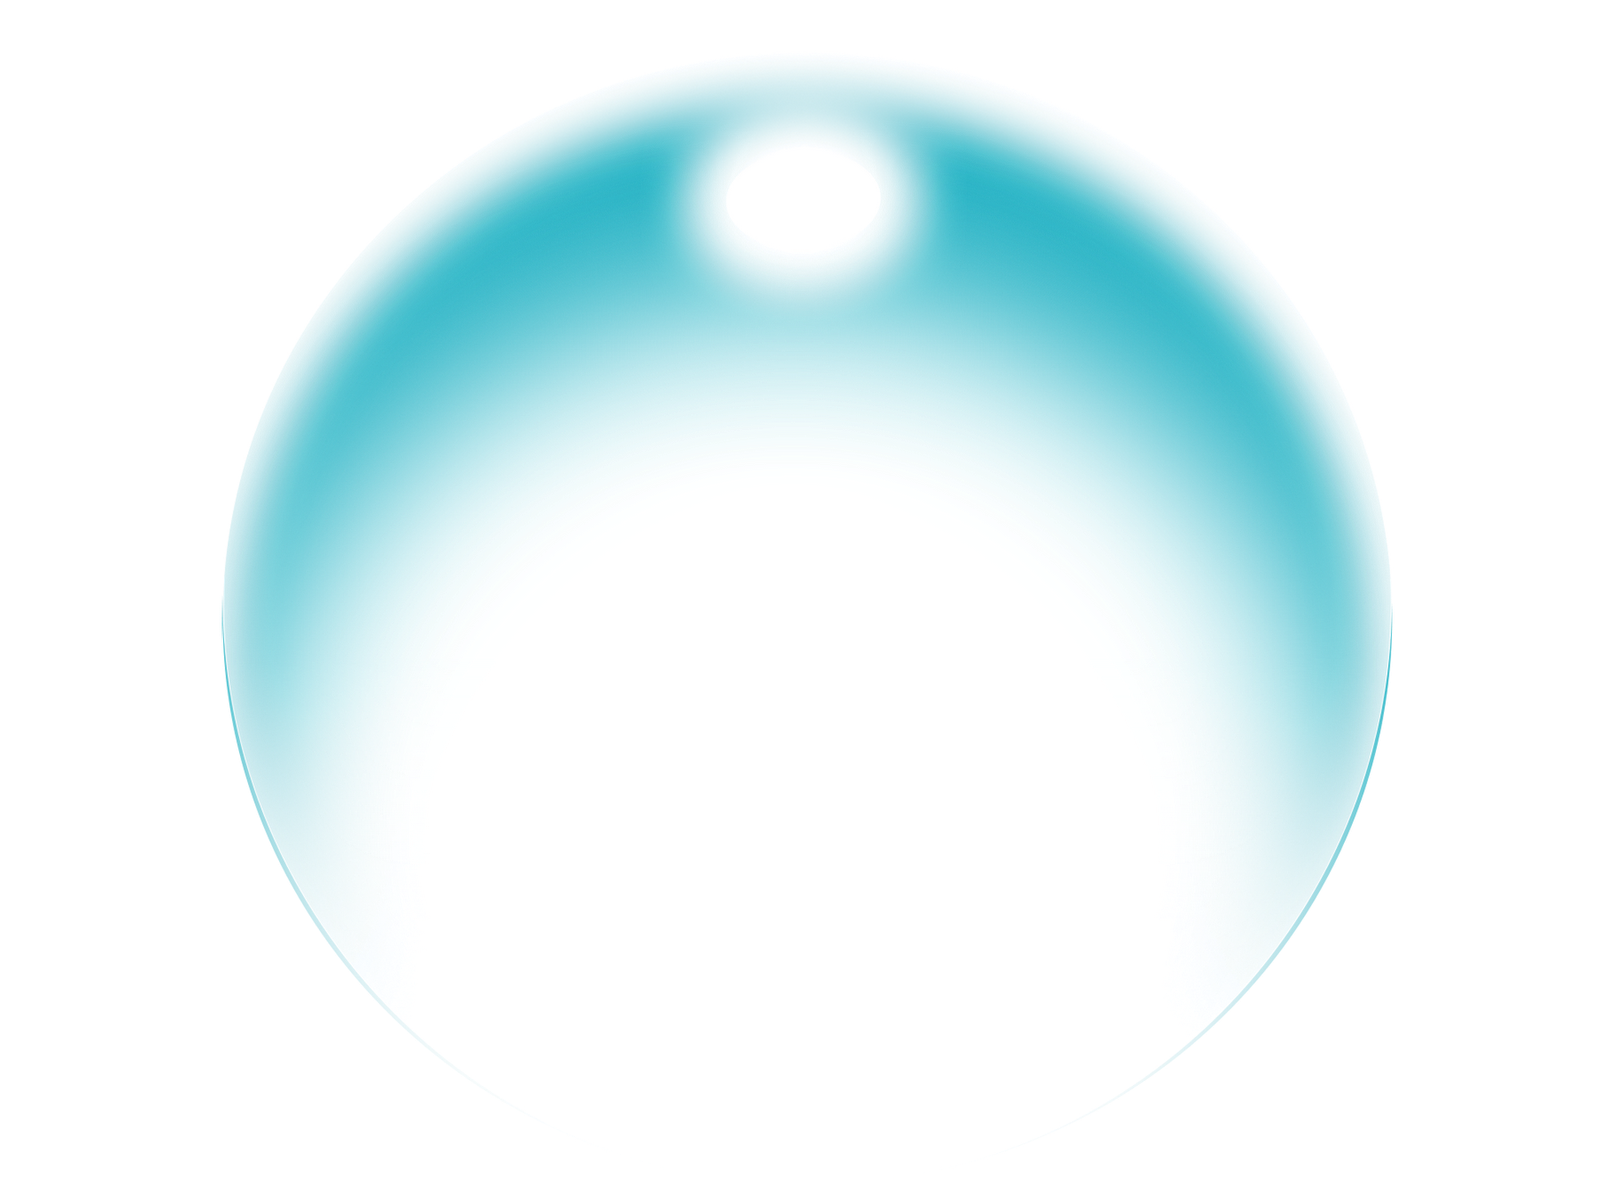 Soft Blue Bubble Png image #44340